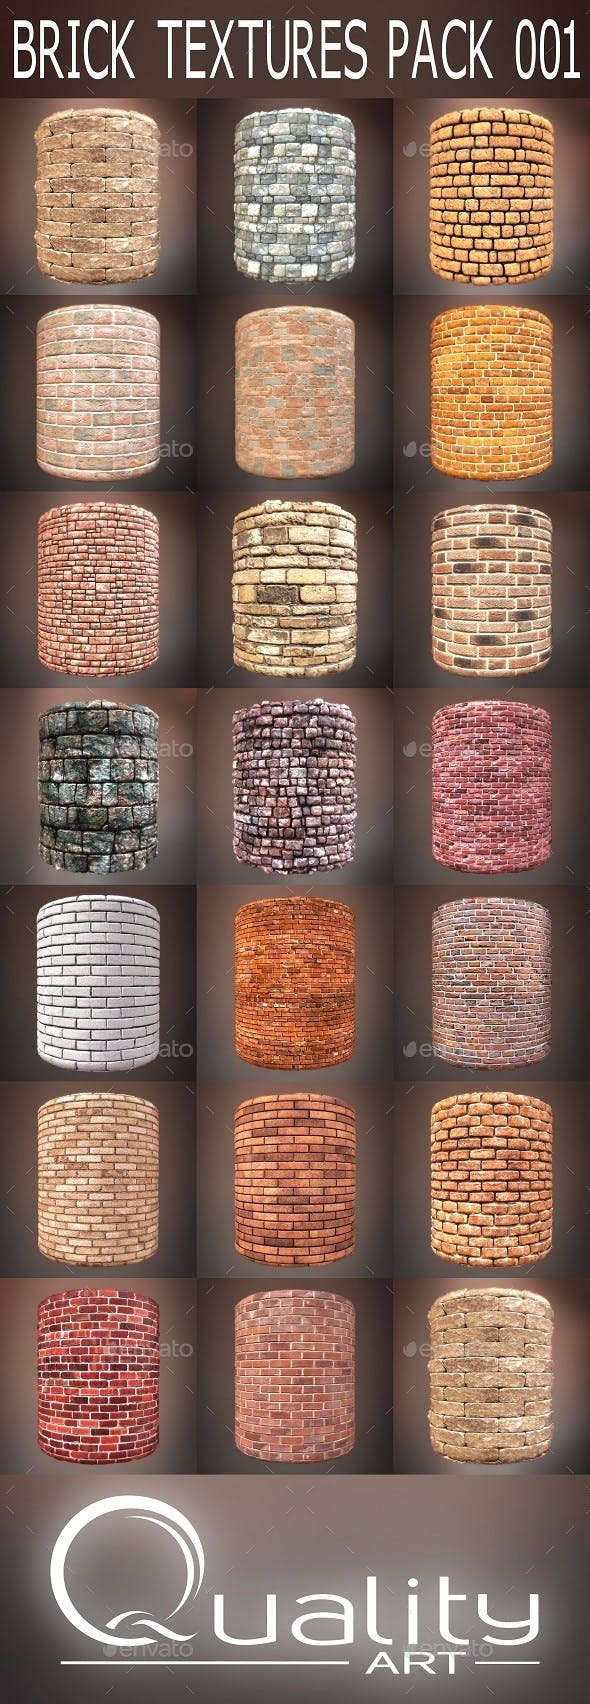 Brick Textures Pack 001 - 3DOcean Item for Sale